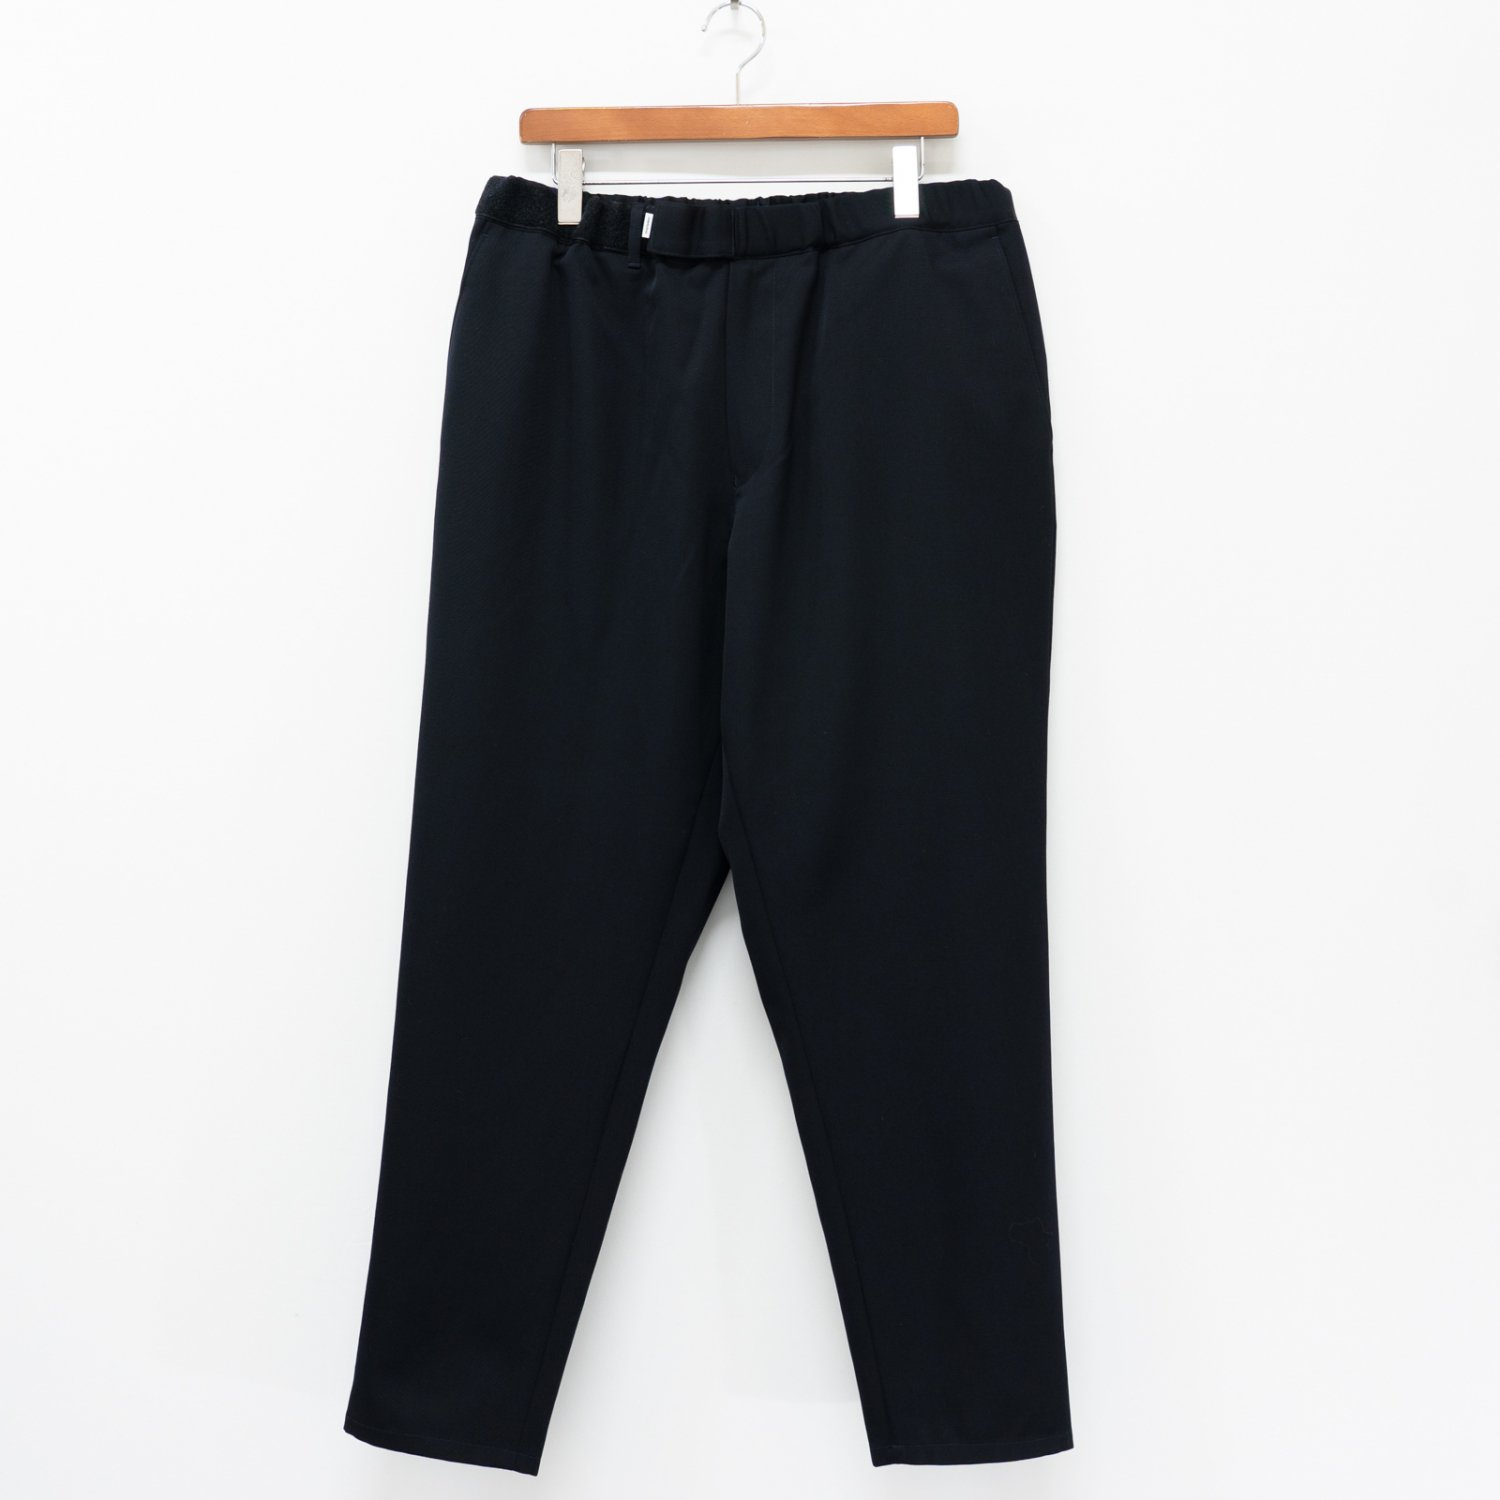 Graphpaper * Selvage Wool Cook Pants * Navy